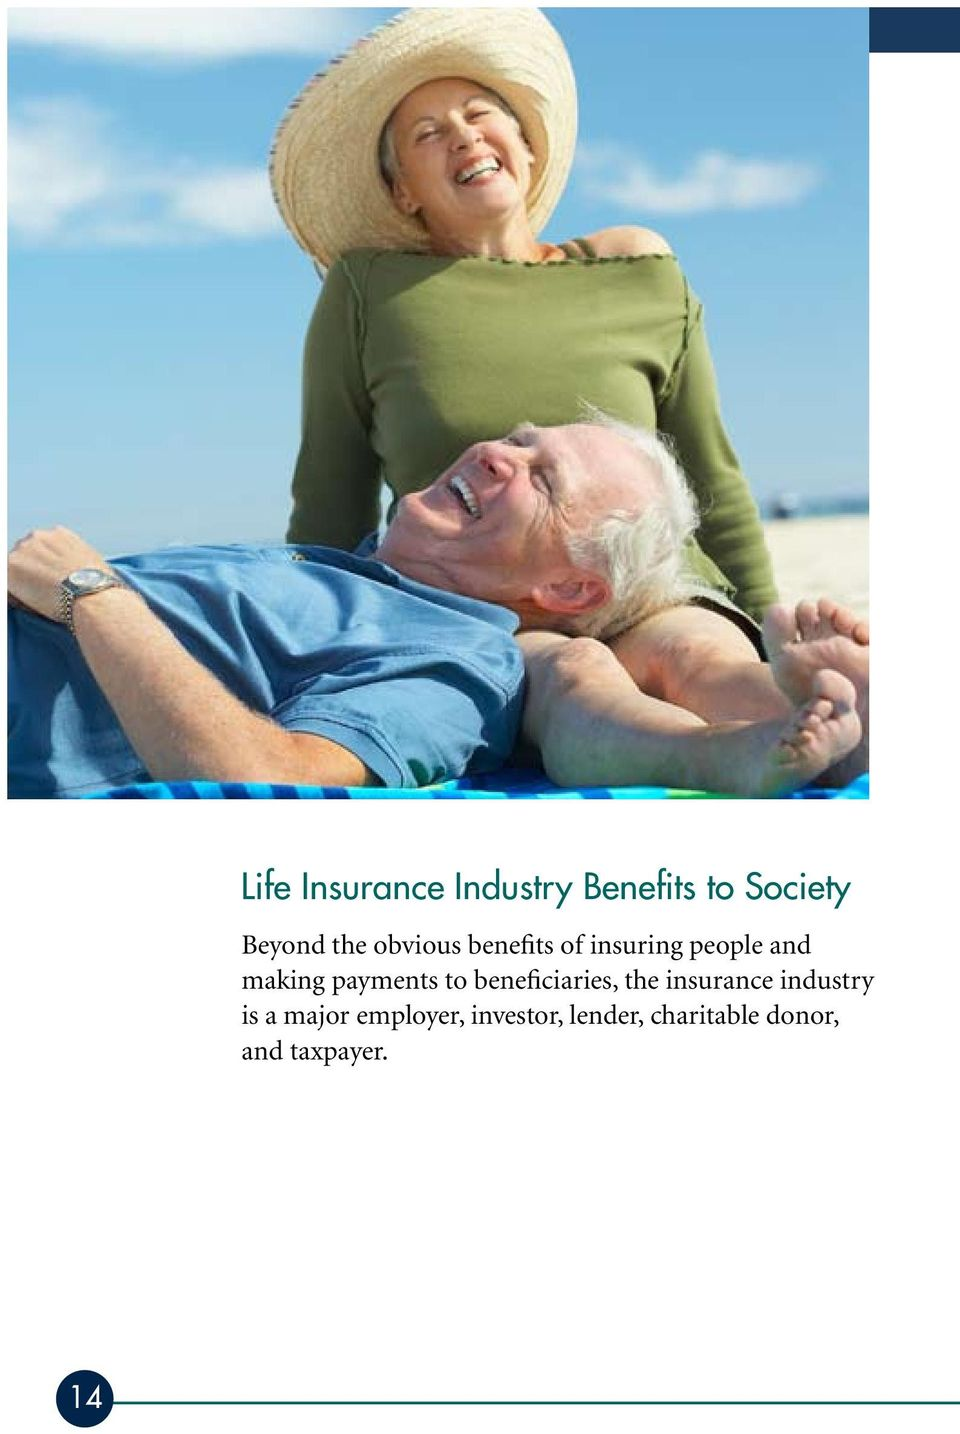 to beneficiaries, the insurance industry is a major